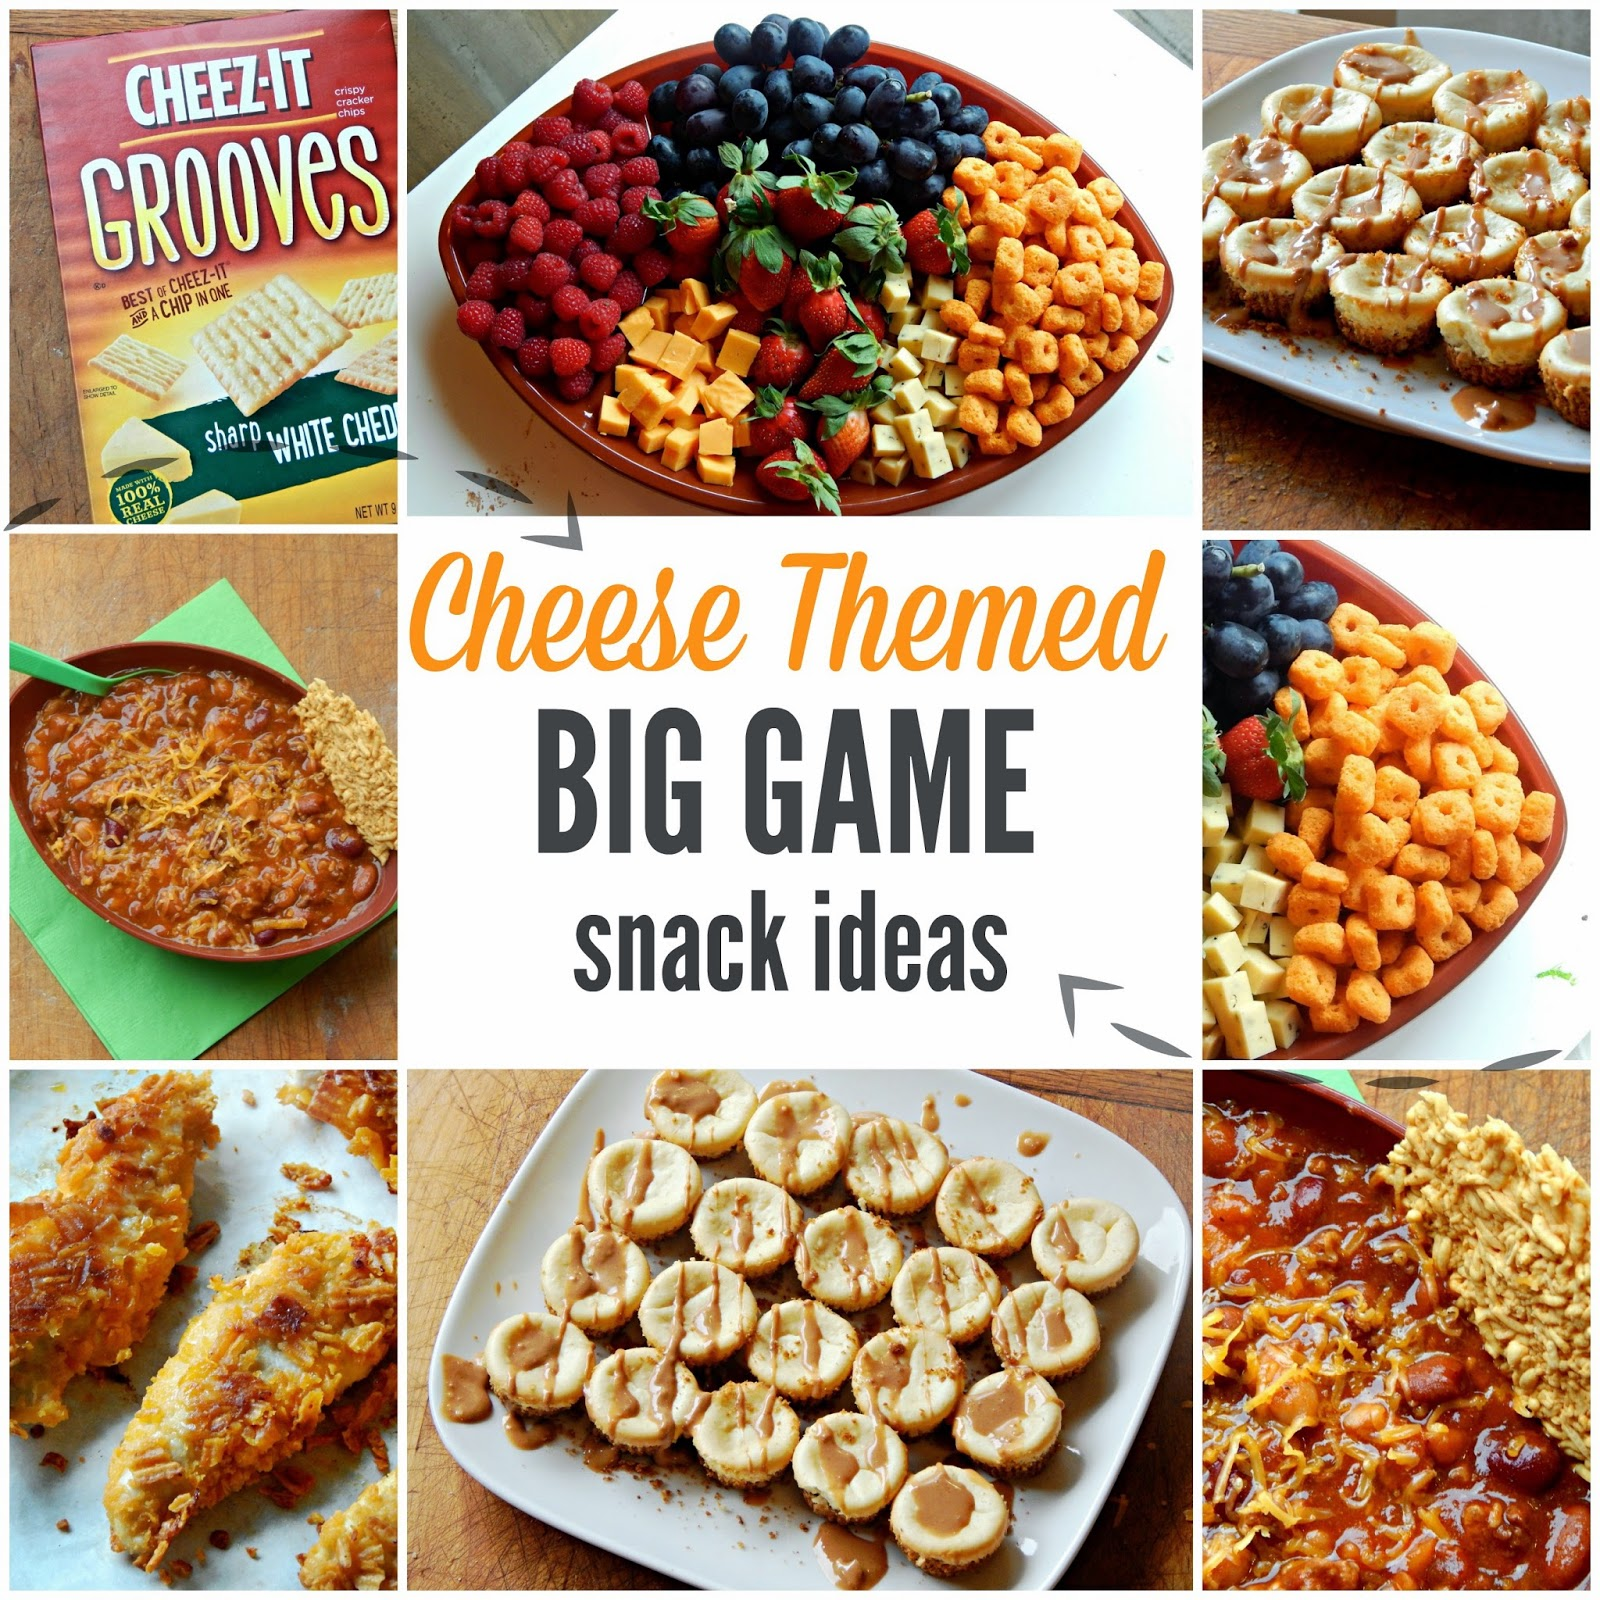 Cheese Themed Big Game Snack Ideas #BigGameSnacks #ad @walmart